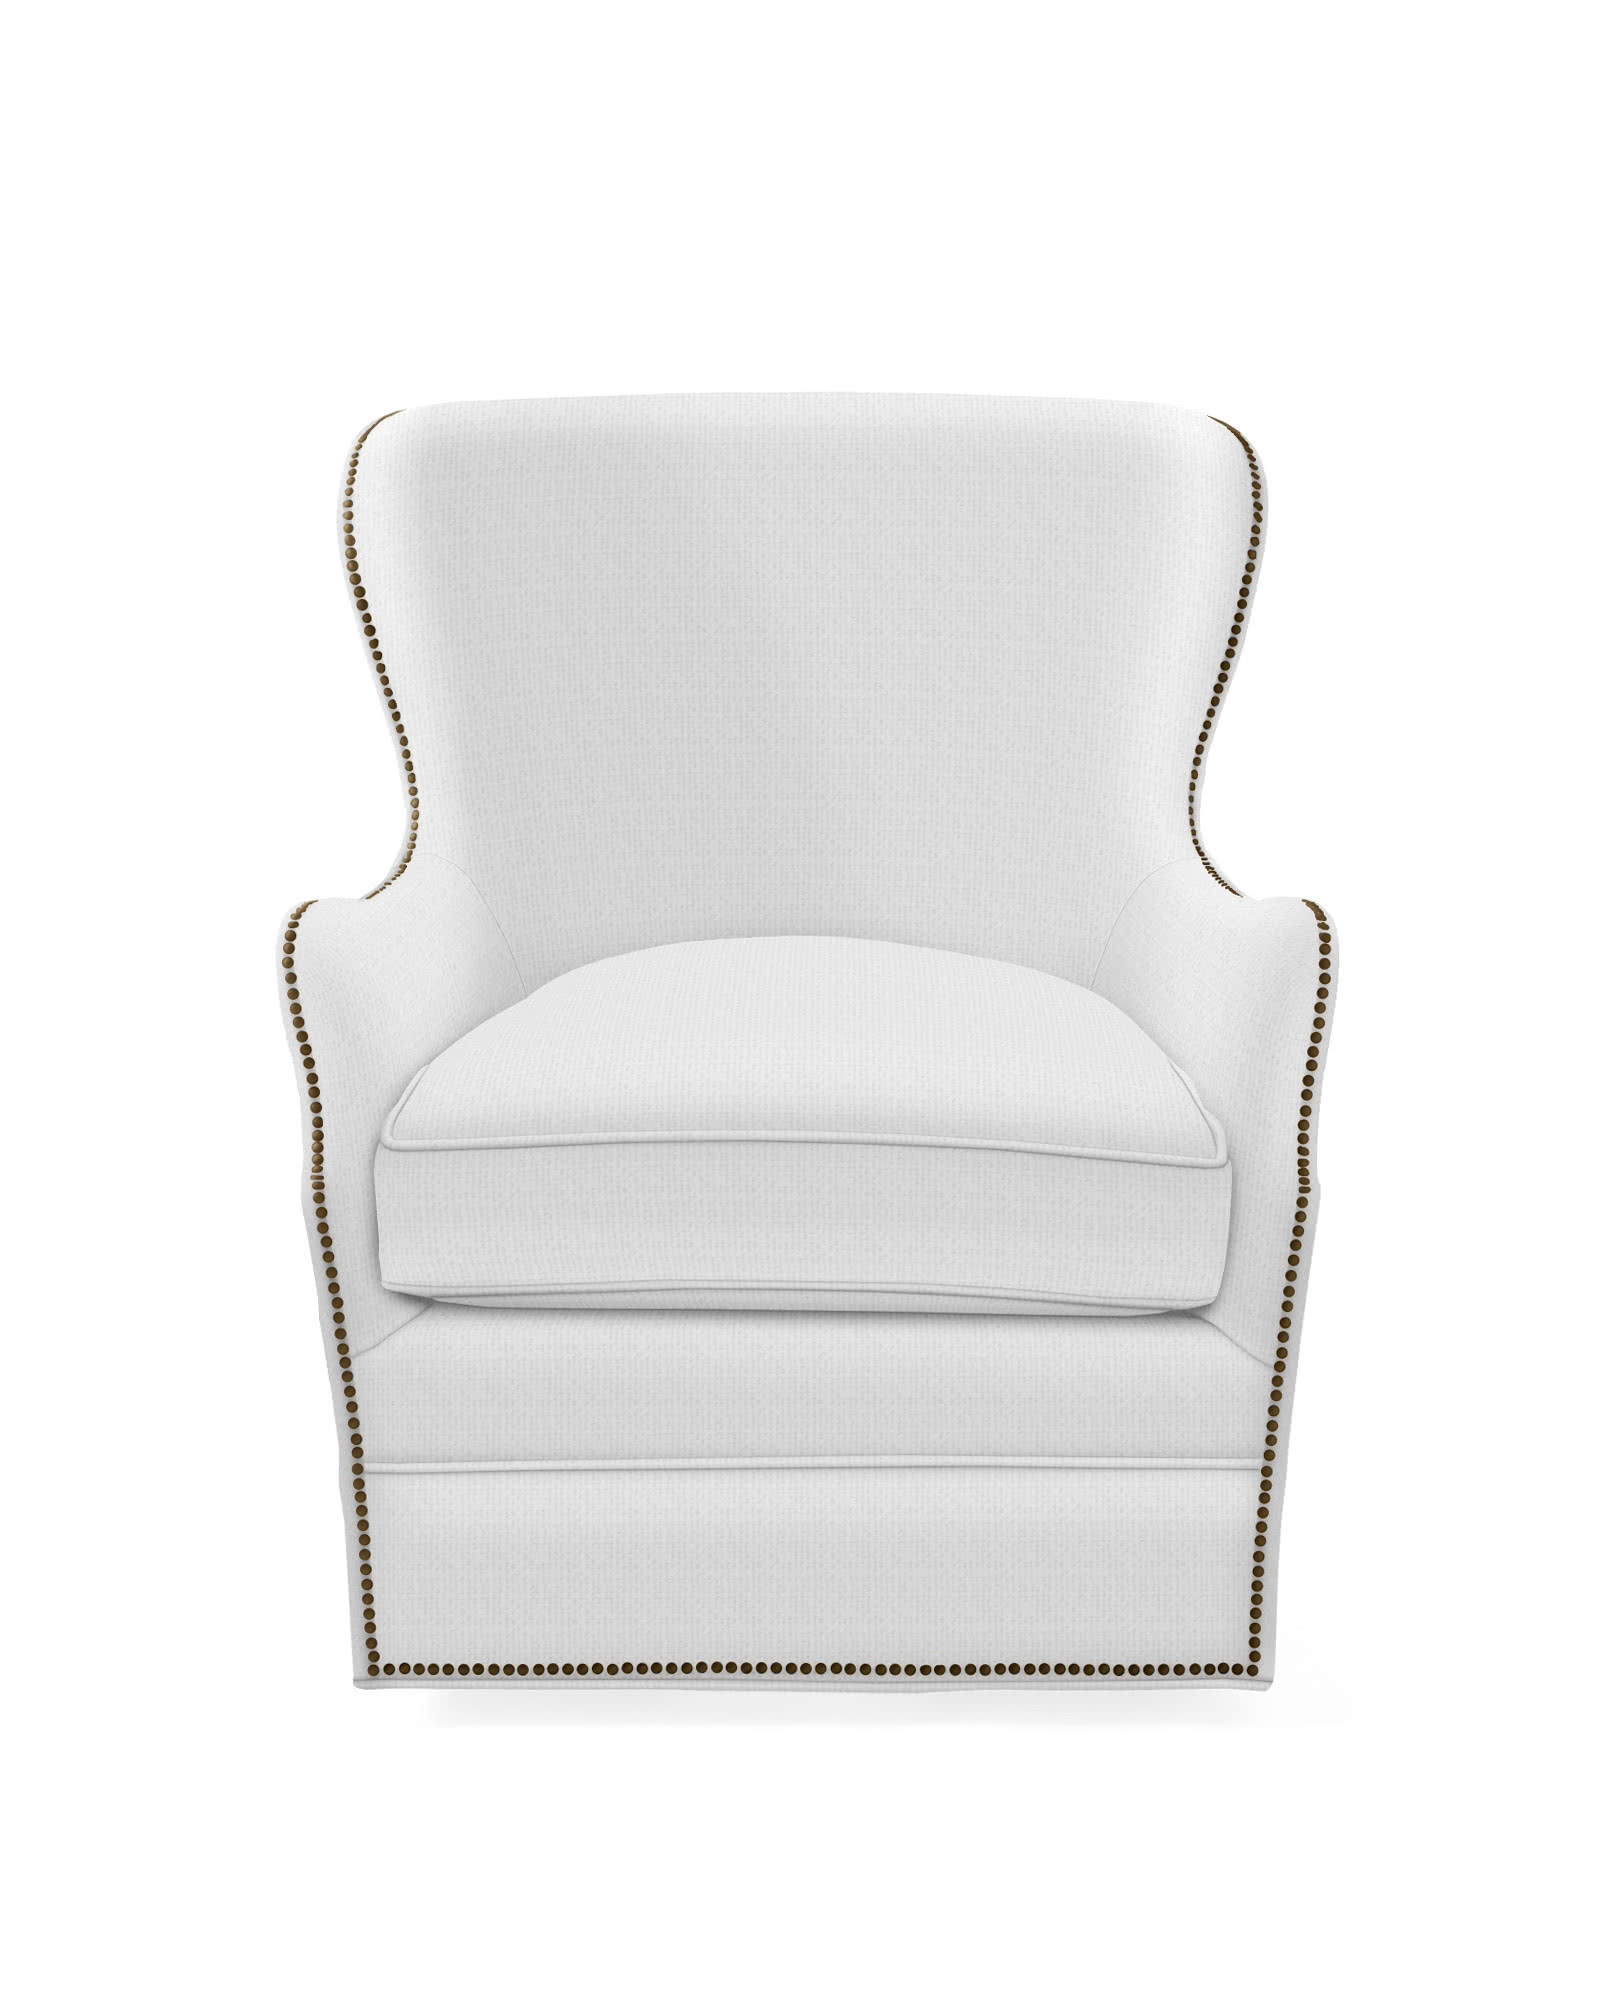 Thompson Swivel Chair with Nailheads,